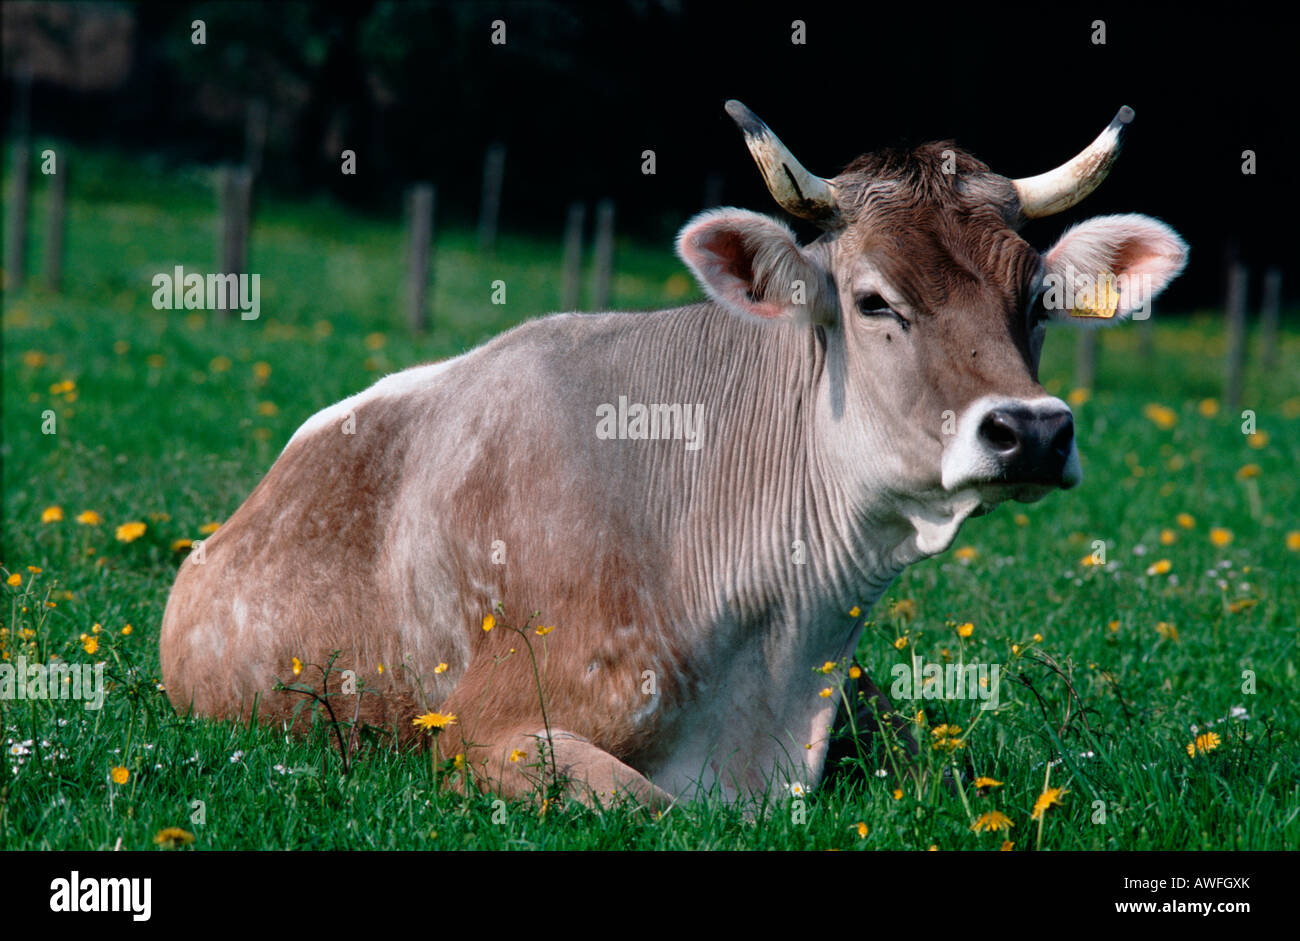 Cow laying on a meadow covered with dandelions near Lake Constance, Germany, Europe Stock Photo